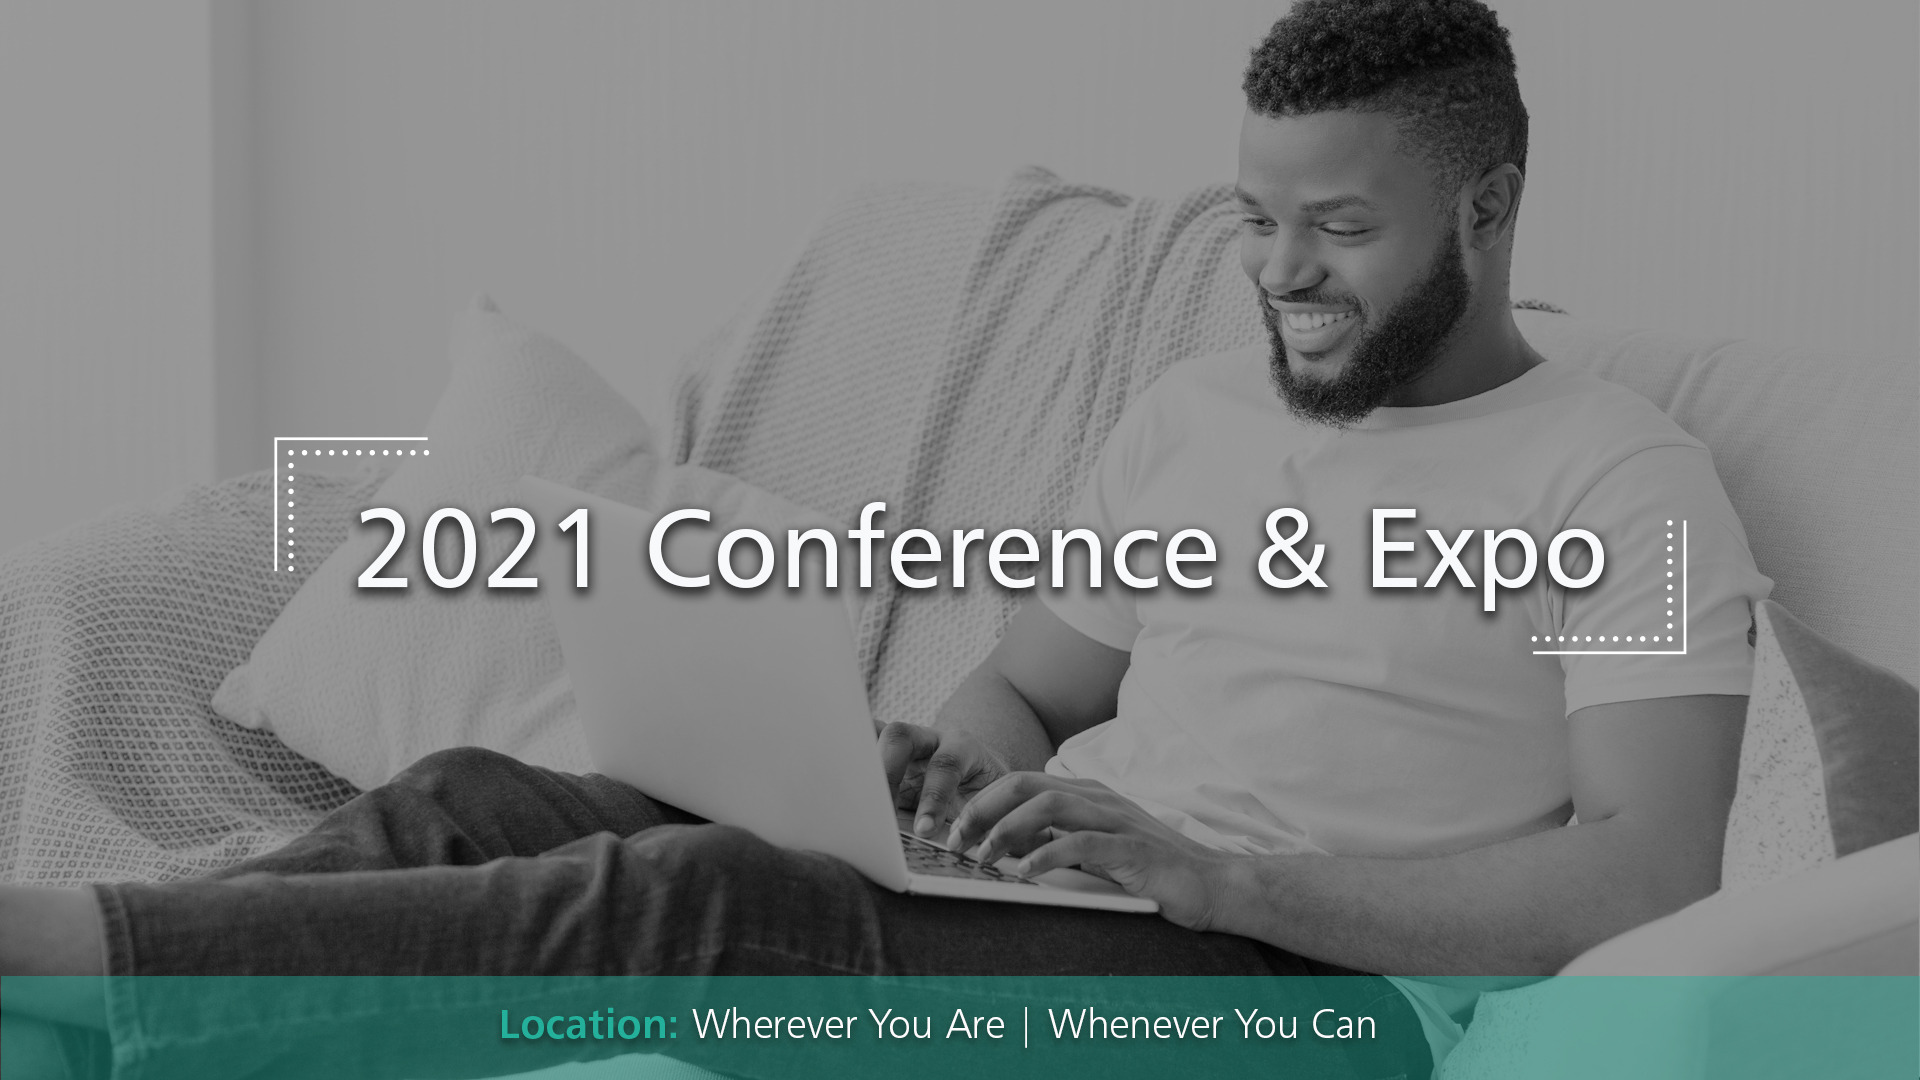 Best Free Conference Call Service 2021 ACA 2021 Conference